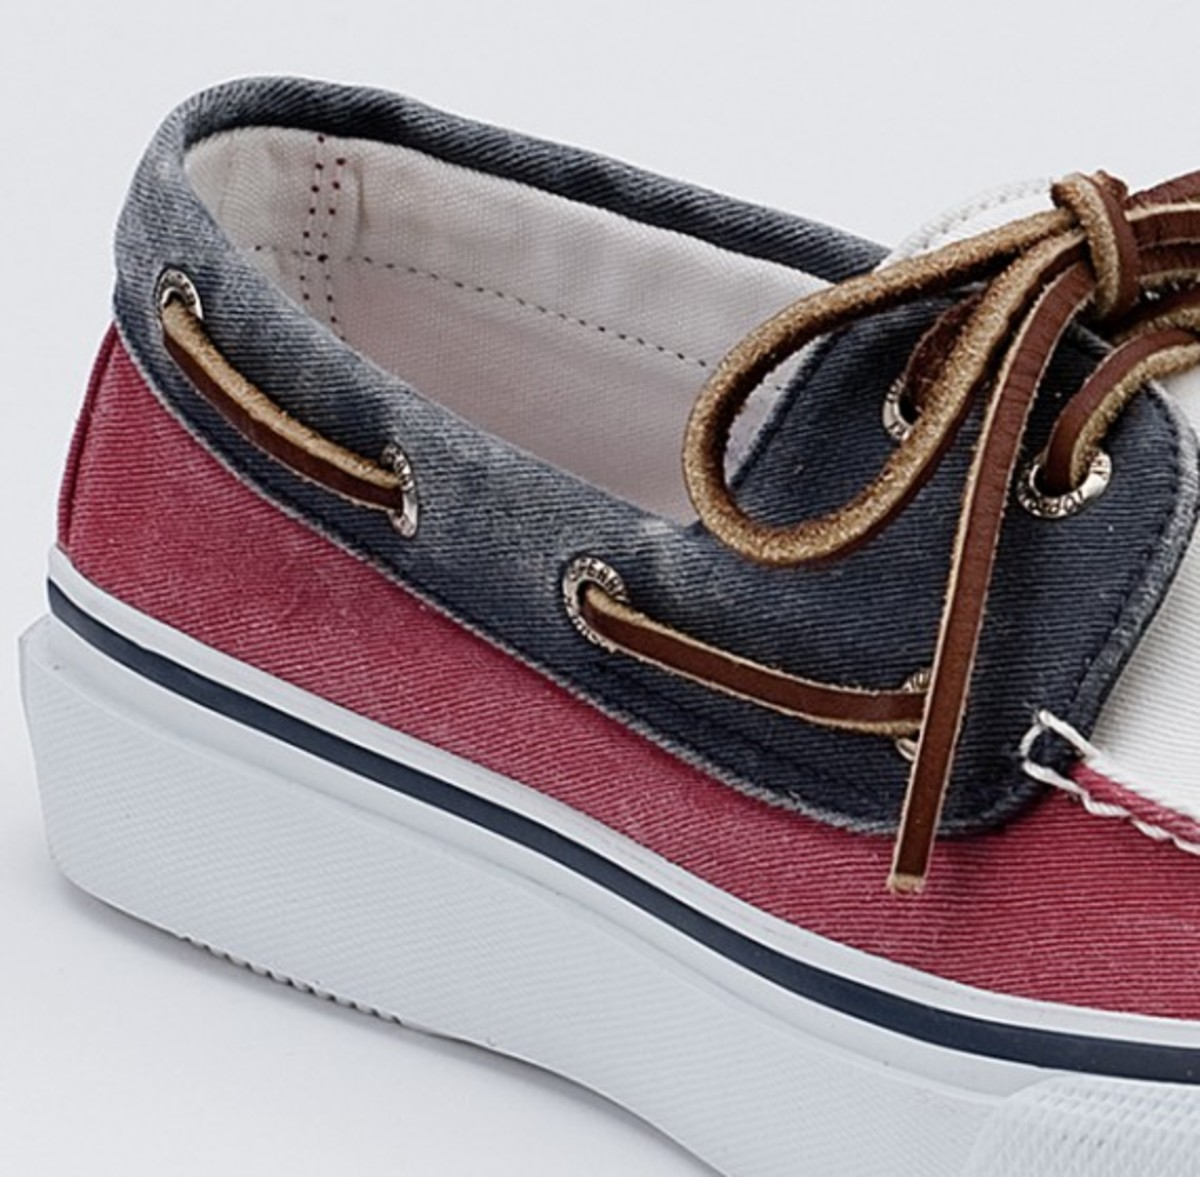 sperry_topsider_ss2010_9